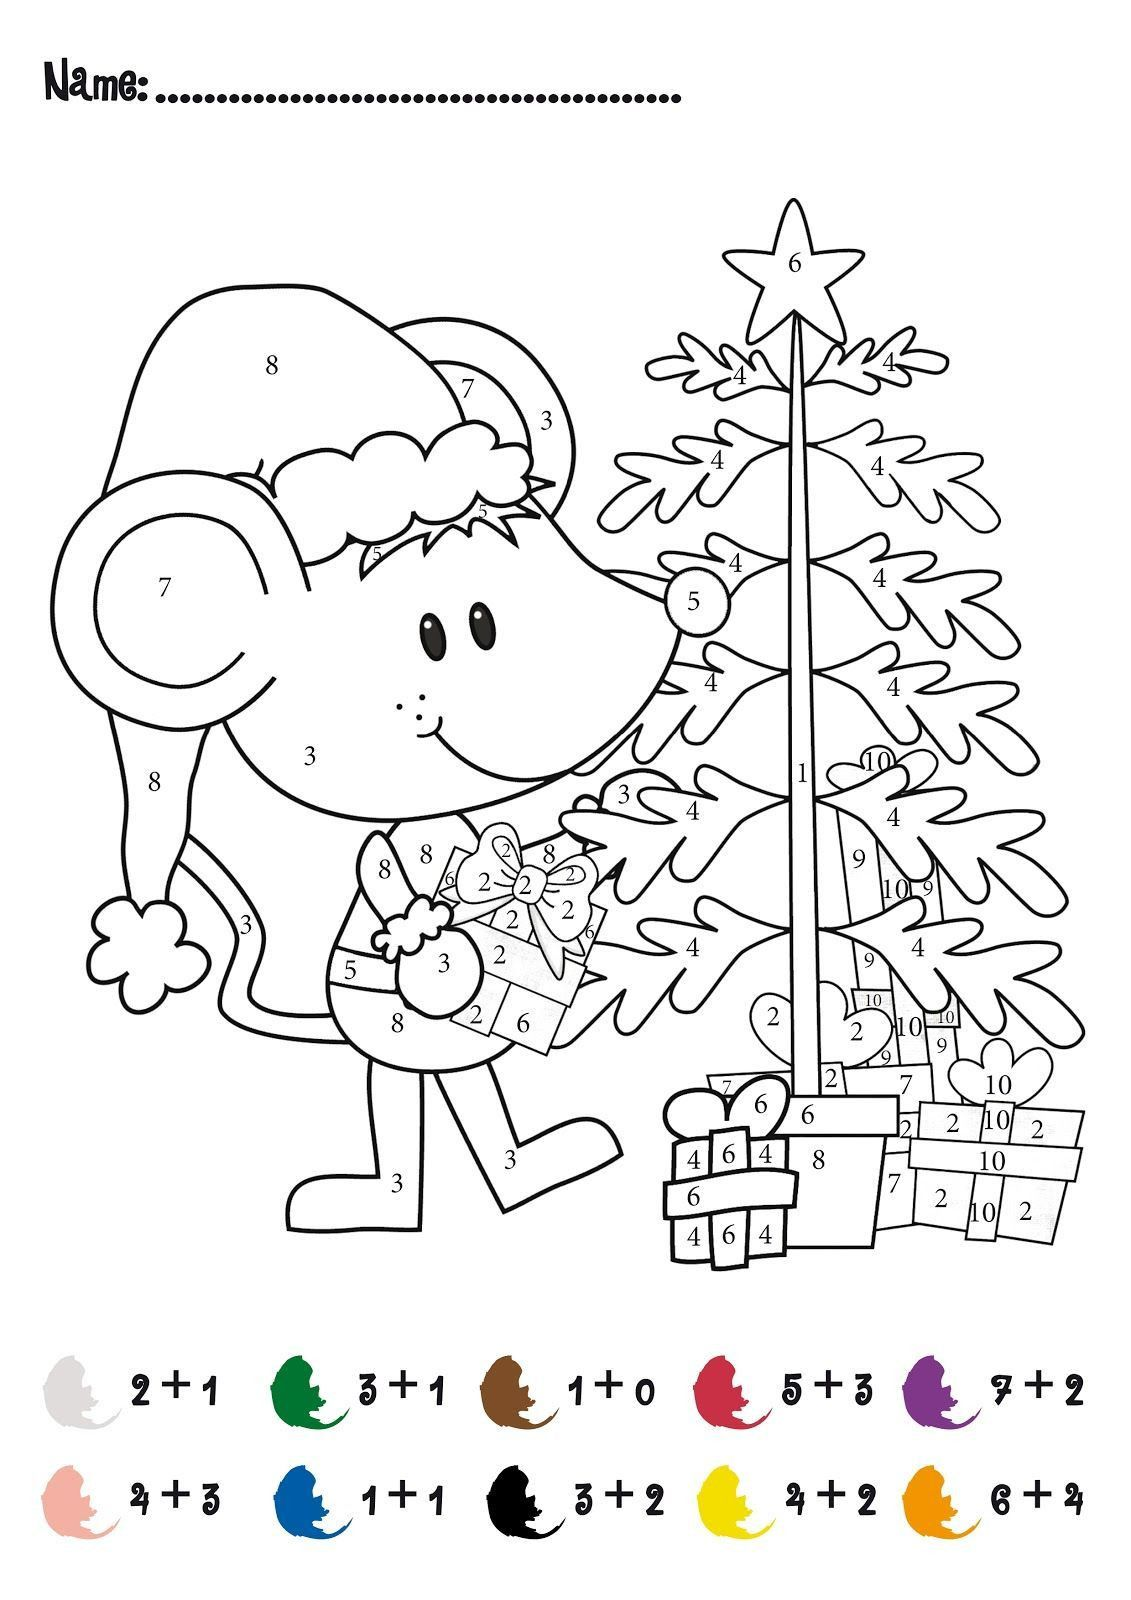 Christmas Math Printable Worksheets Pin On Coloring Page Christmas Math Worksheets Math Coloring Worksheets Christmas Worksheets